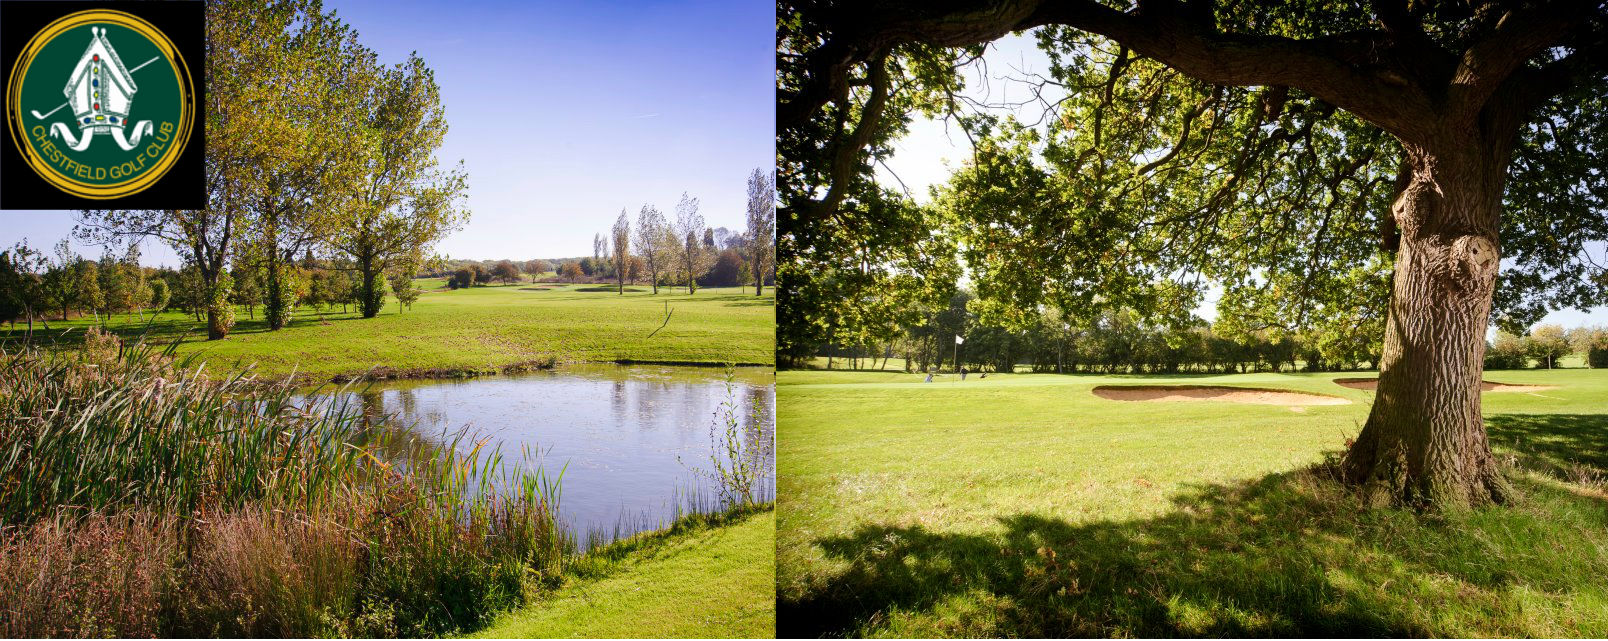 Chestfield-Golf-Course-whitstable